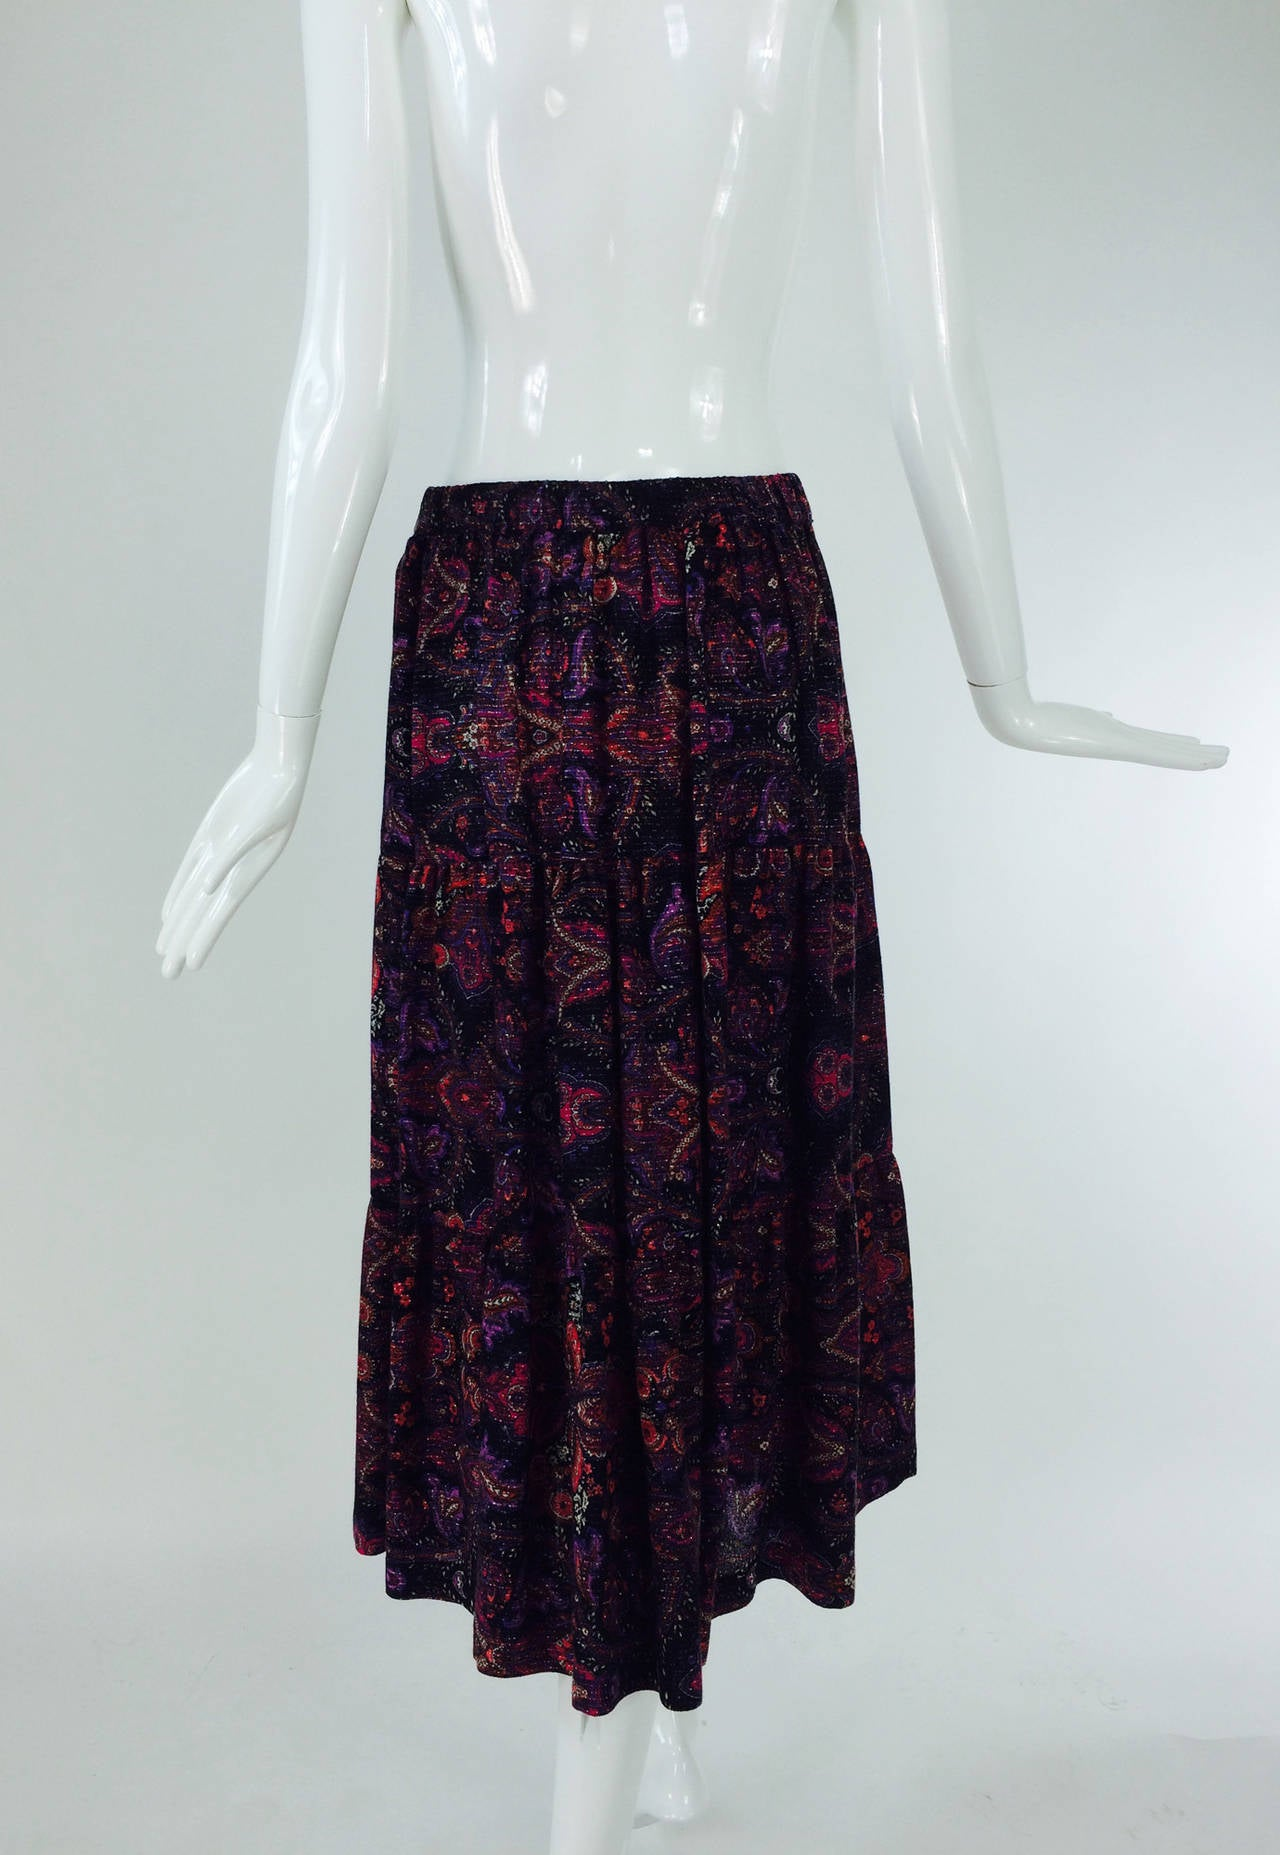 Yves St Laurent YSL Rive Gauche metallic paisley tiered gypsy skirt 1970s For Sale 3